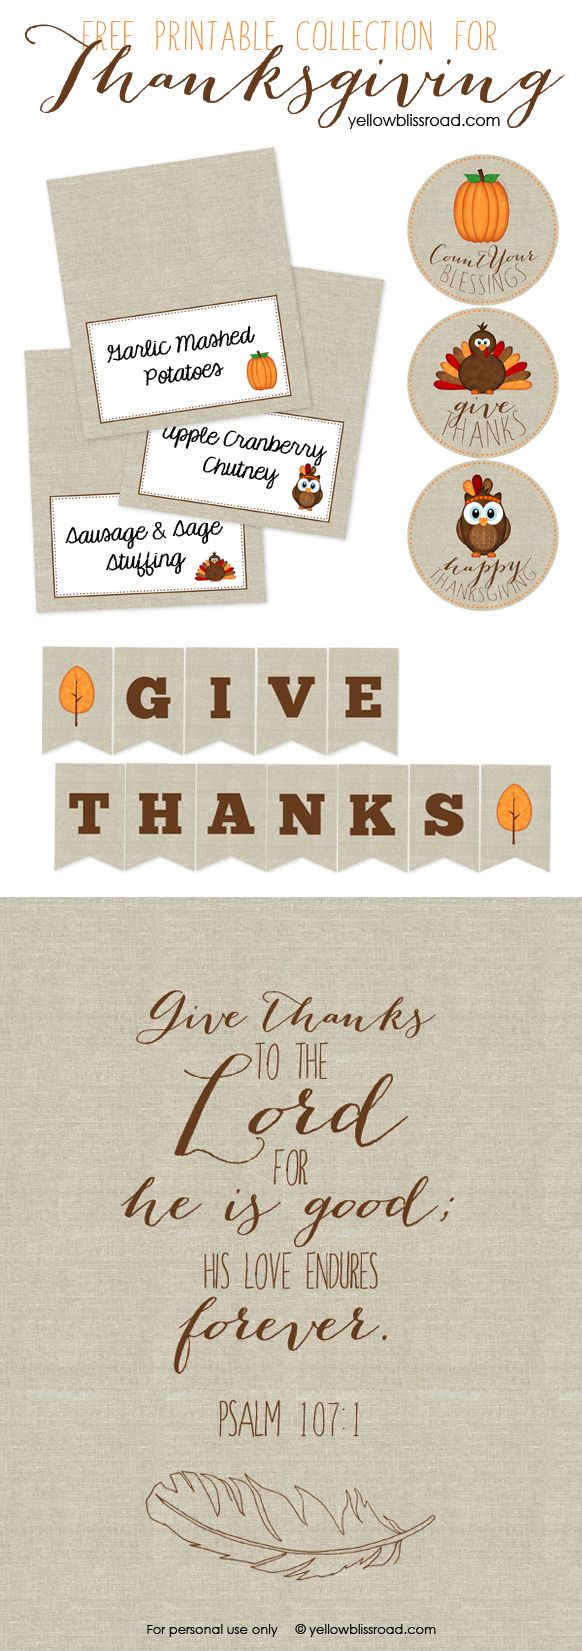 Free Printables for Thanksgiving - Yellow Bliss Road  #holidayideaexchange